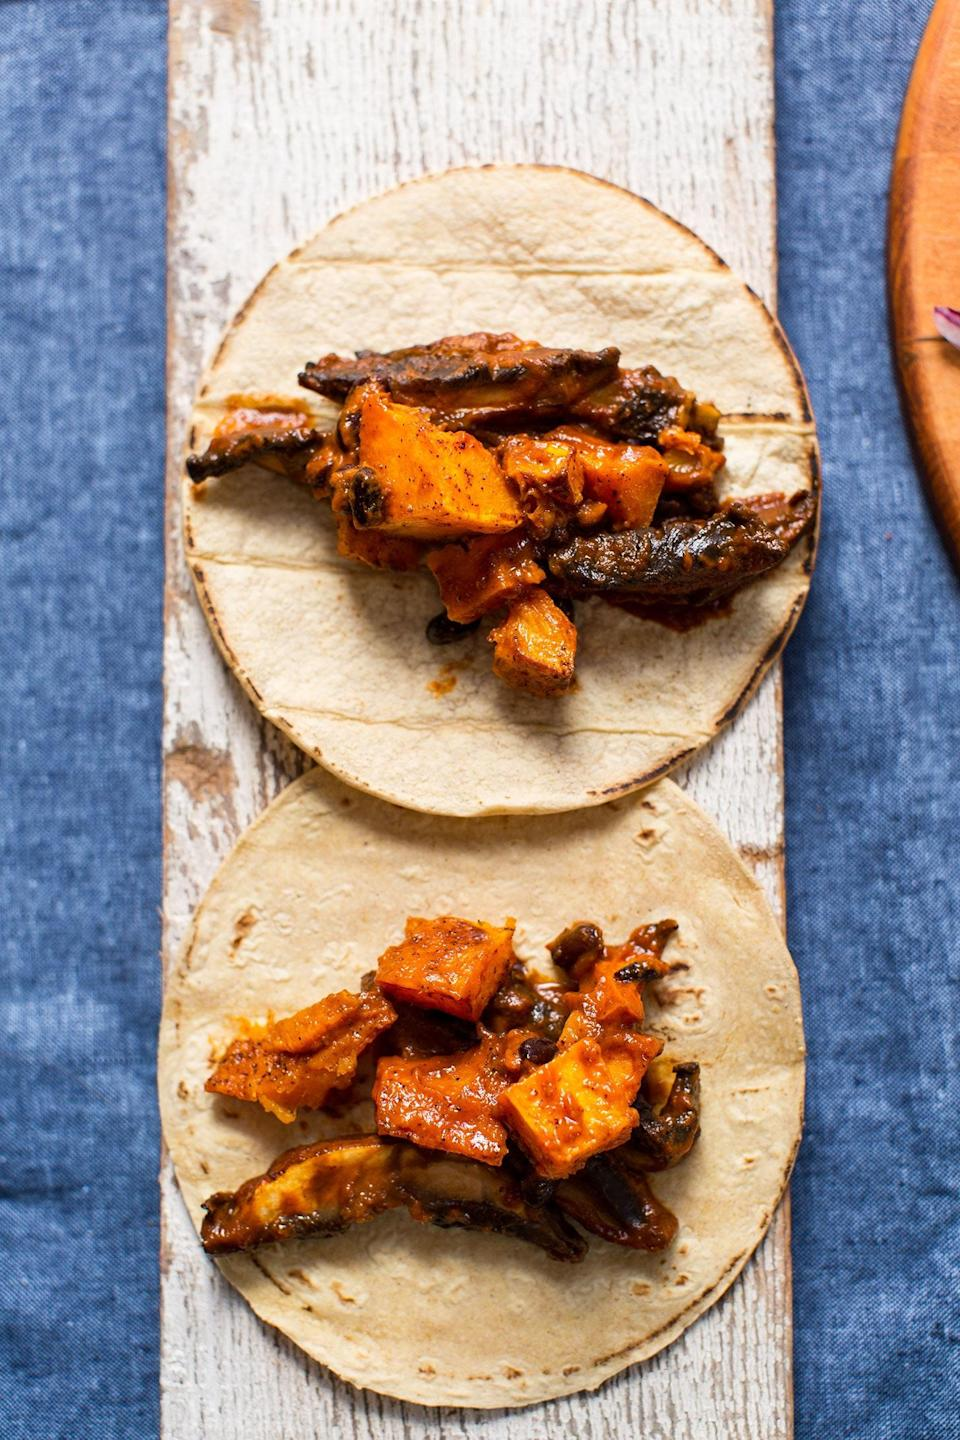 """<p>Mushrooms are sort of the OG meat substitute, thanks to their hearty, juicy texture when cooked. Slather them in smokey adobo sauce, and you've got yourself a taco masterpiece.</p> <p>Get the recipe <a href=""""https://minimalistbaker.com/saucy-portobello-butternut-squash-tacos/"""" rel=""""nofollow noopener"""" target=""""_blank"""" data-ylk=""""slk:here"""" class=""""link rapid-noclick-resp"""">here</a>.</p>"""